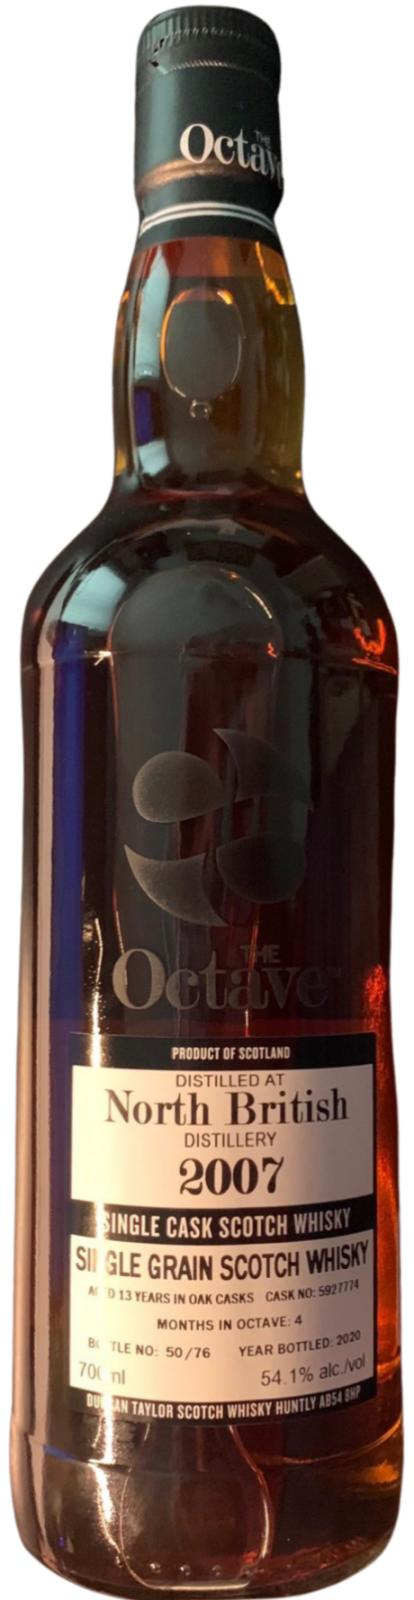 Duncan Taylor Sherry Octave, North British 2007, 13 Year Old 54.1% 70cl